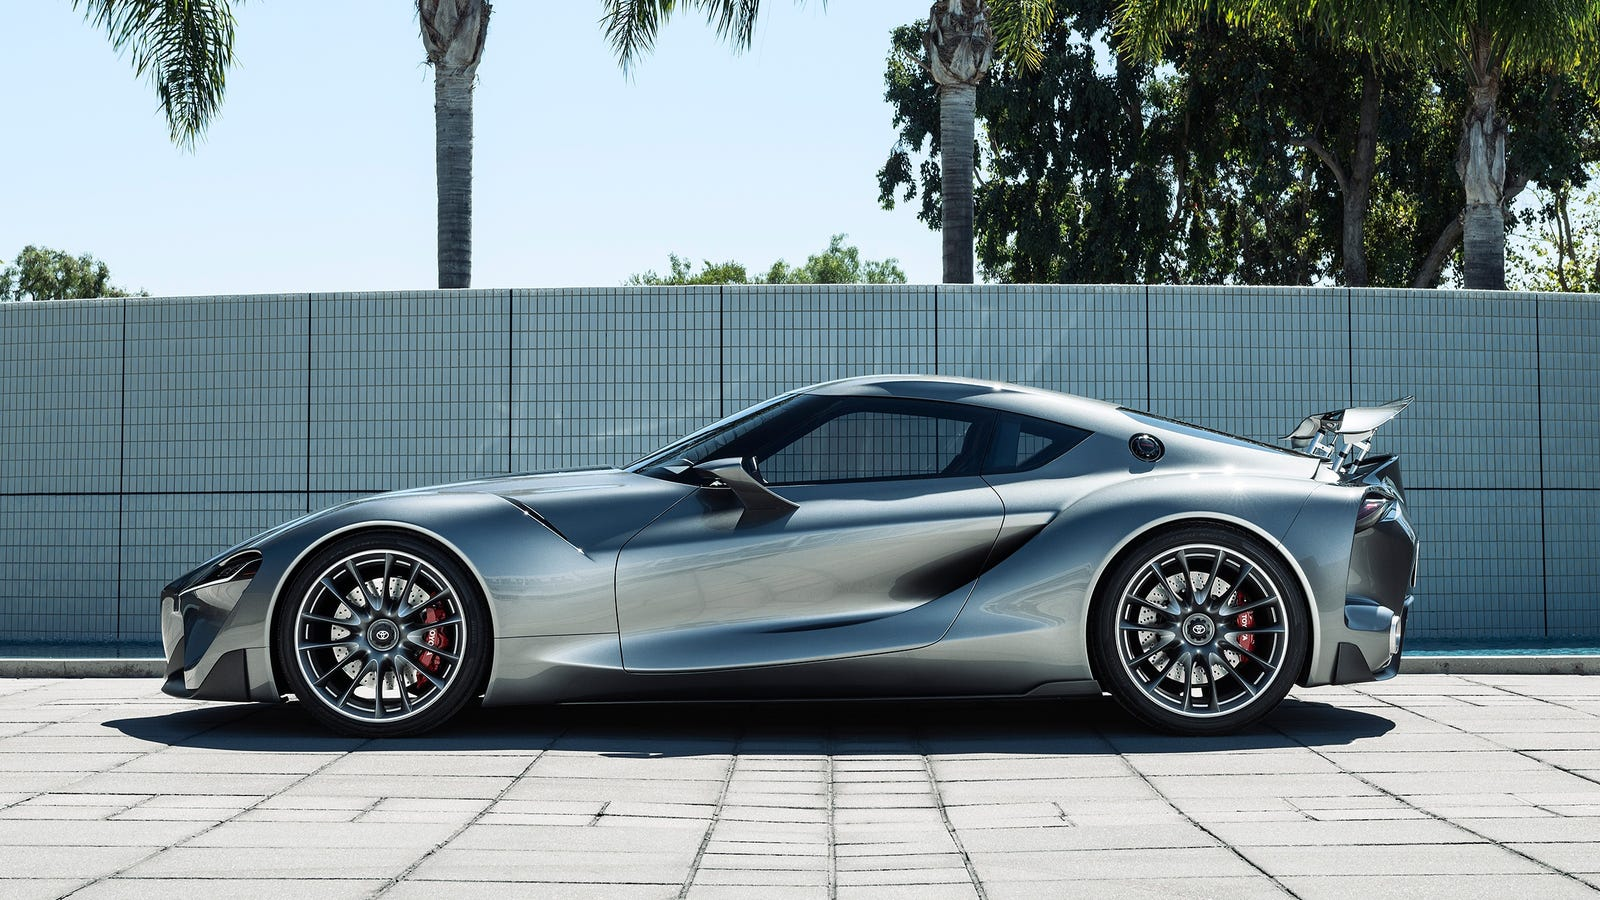 Toyota S Mythical New Supra May Have A 400 Horsepower Twin